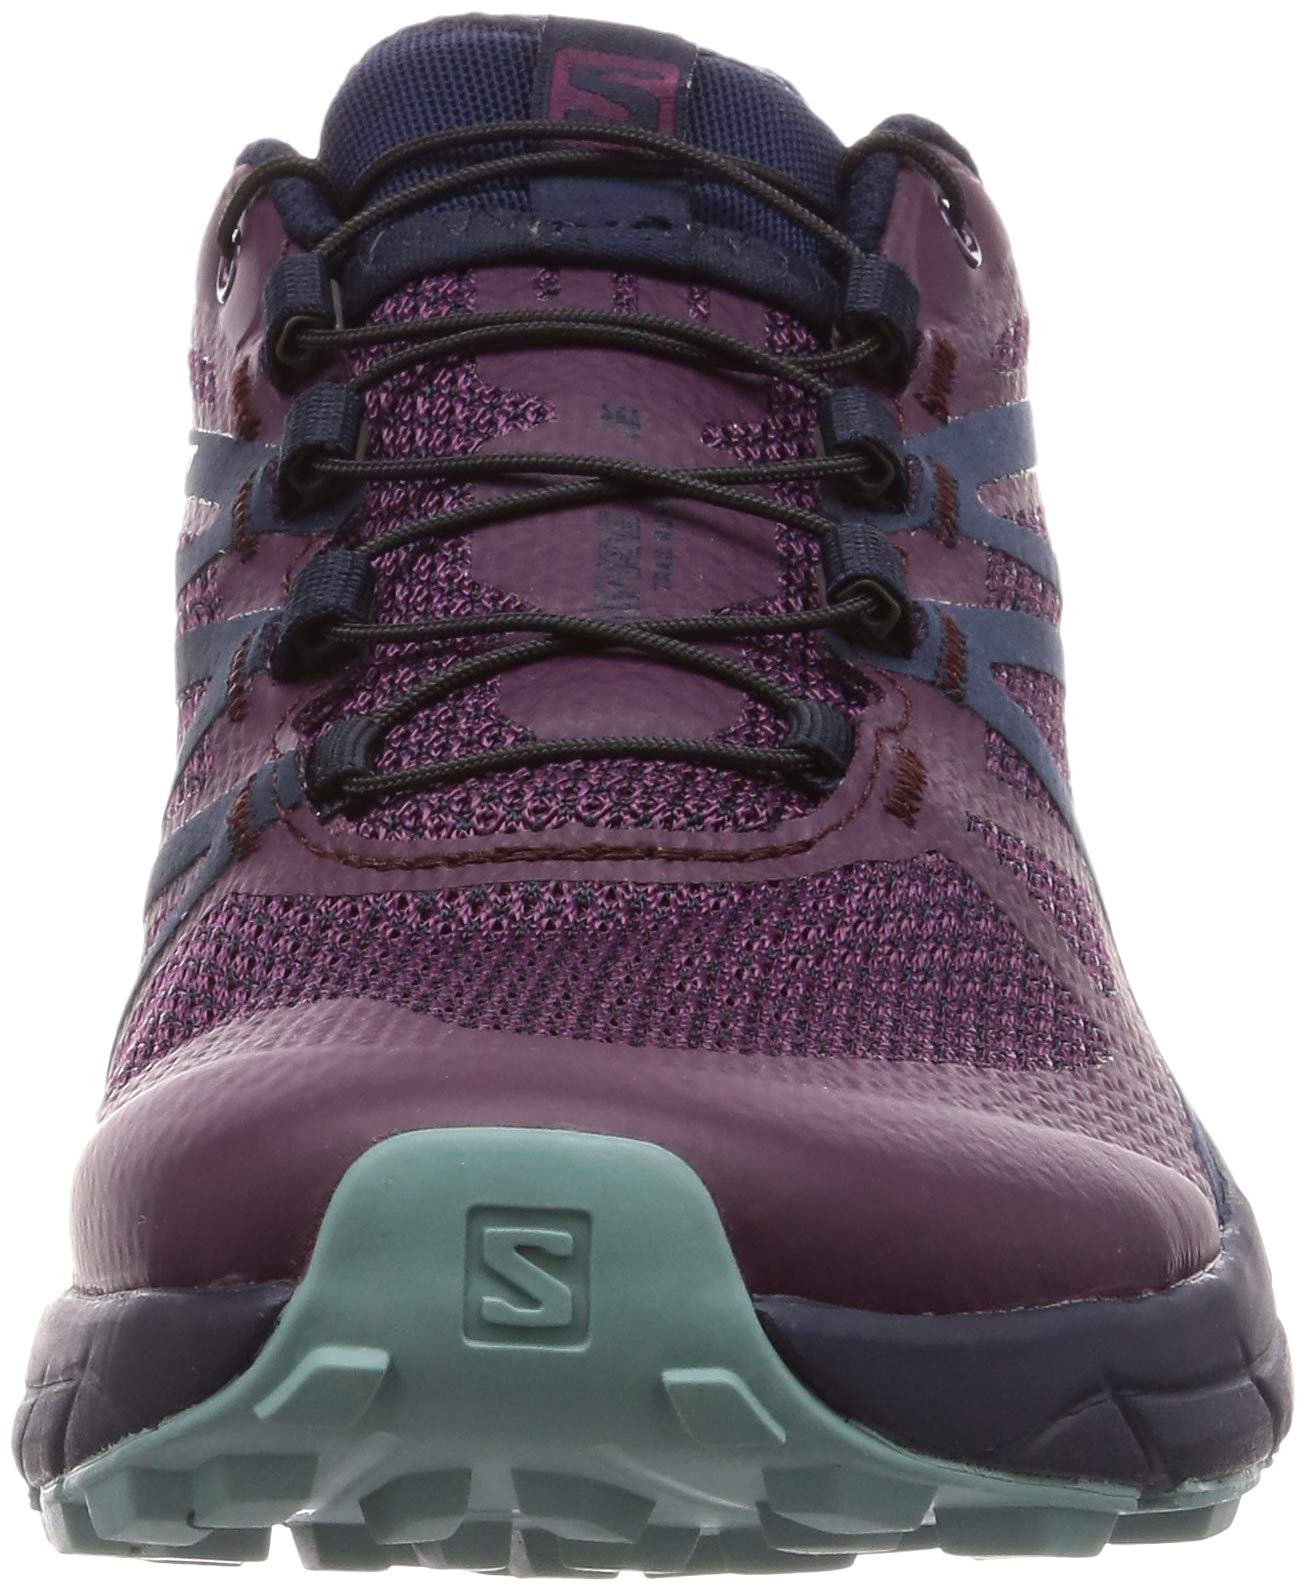 Salomon Sense Ride Running Shoe - Women's Potent Purple/Graphite/Navy Blazer 6 by Salomon (Image #4)